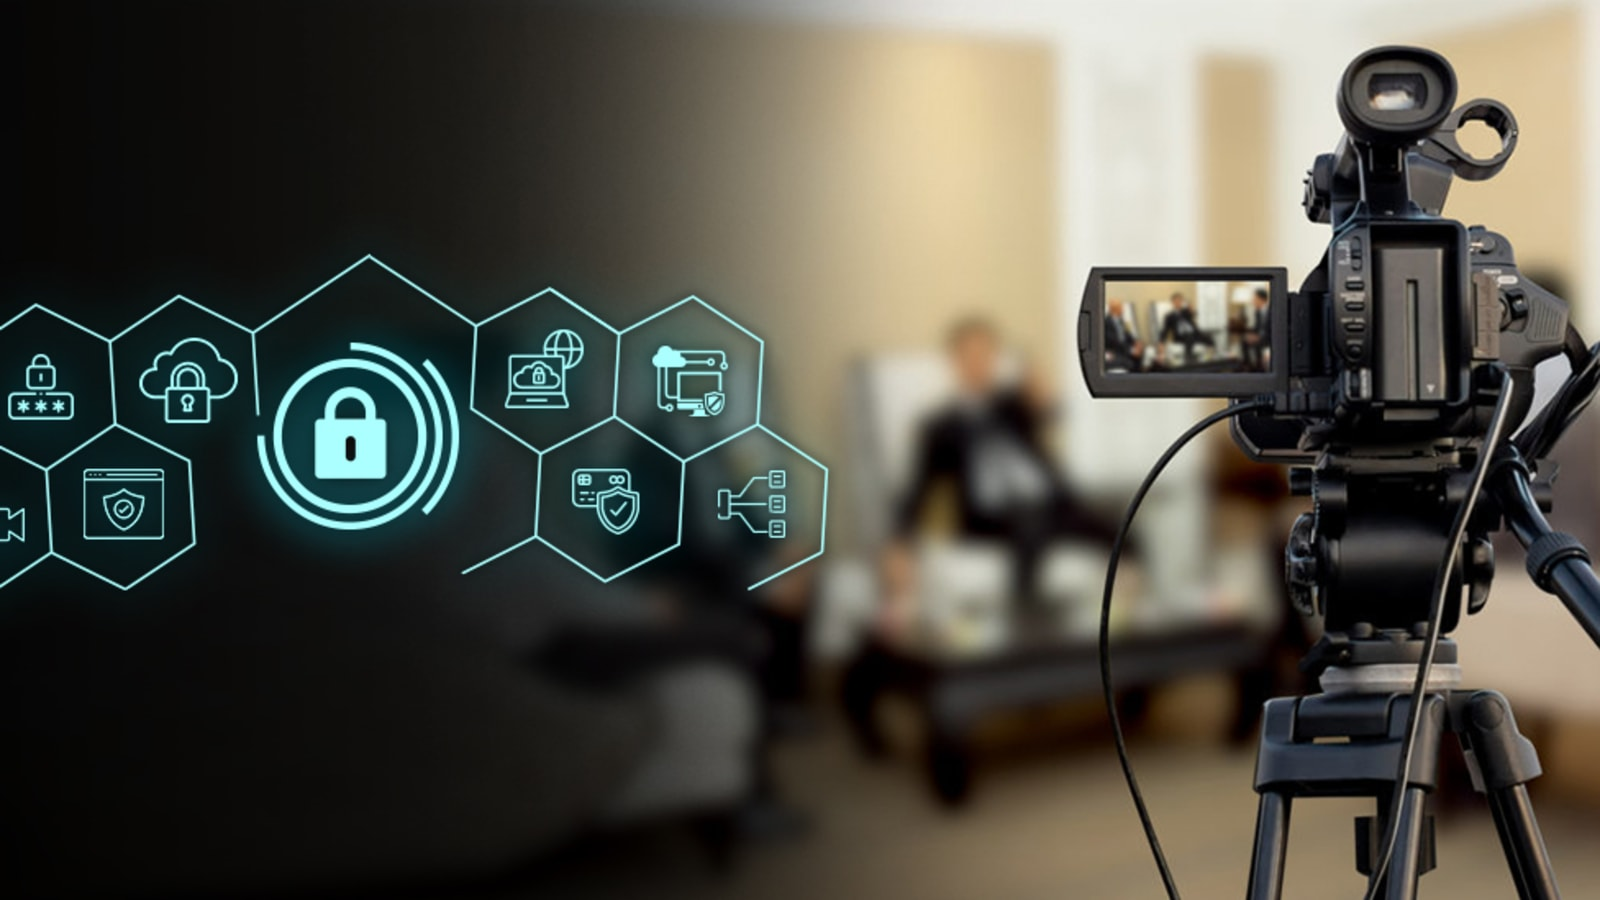 Video Streaming Market 2021 High Growth Forecast due to Rising Demand and Future Trends to 2031